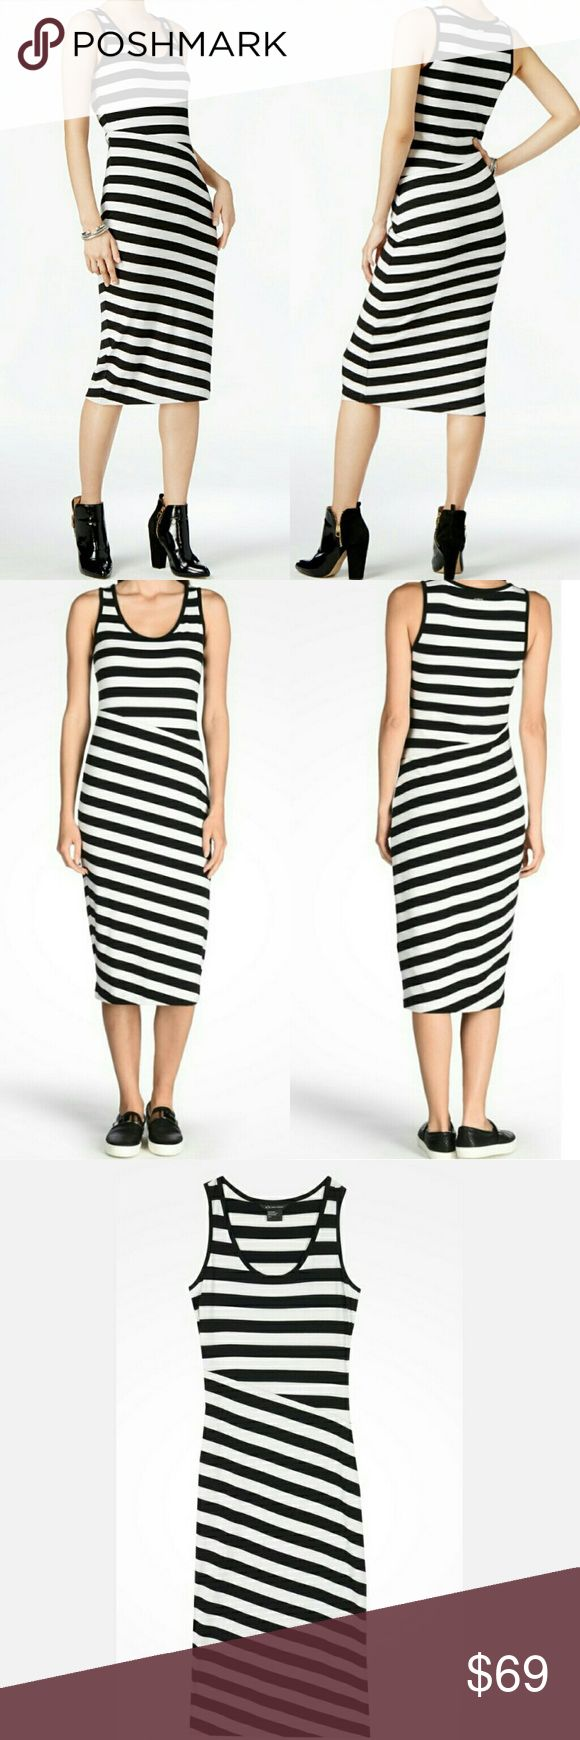 """🆕Armani Exchange Striped Bias Cut Jersey Dress A sleek and simple striped jersey tank dress with a bias cut offers a flattering fit. Pairs perfectly with a leather jacket for cool nights. Material:62% Polyester, 33% Viscose, 5% Elastane. Machine washable. Approximate measurements: 18"""" armpit to armpit, 15"""" waist laid flat, 46"""" shoulder to hem. According to the manufacturer, the fit runs true to size. Armani Exchange Dresses"""